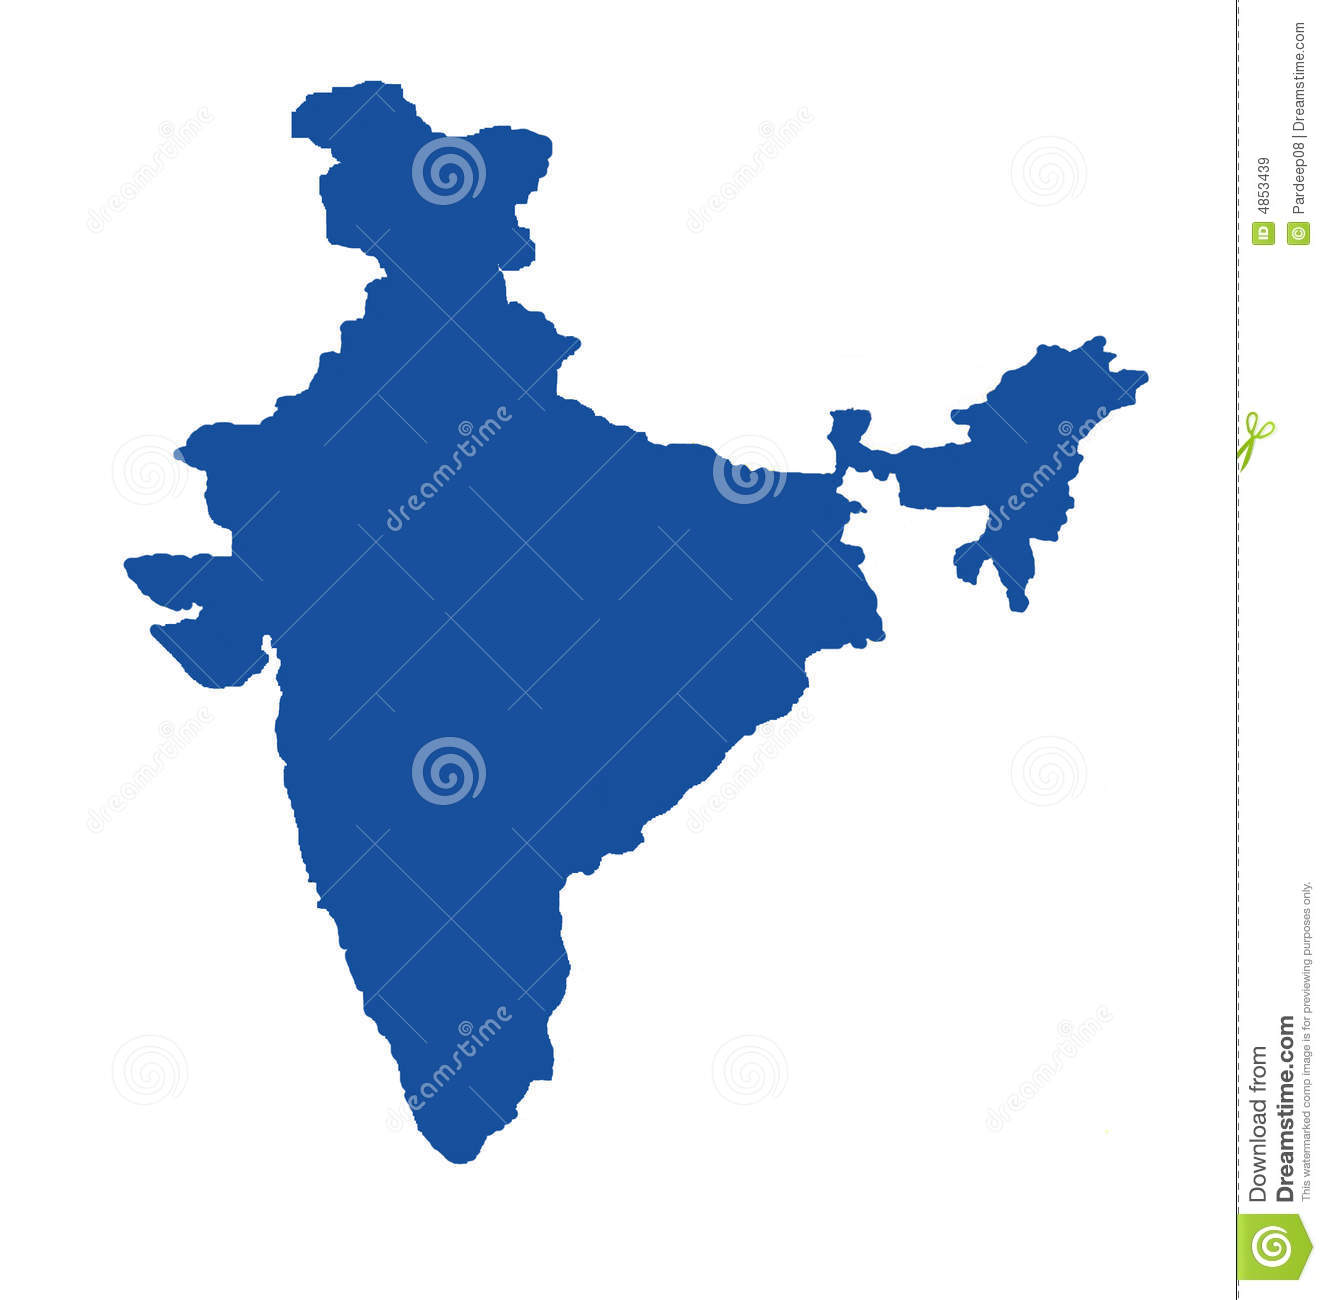 blue map of india royalty free stock images   image 4853439